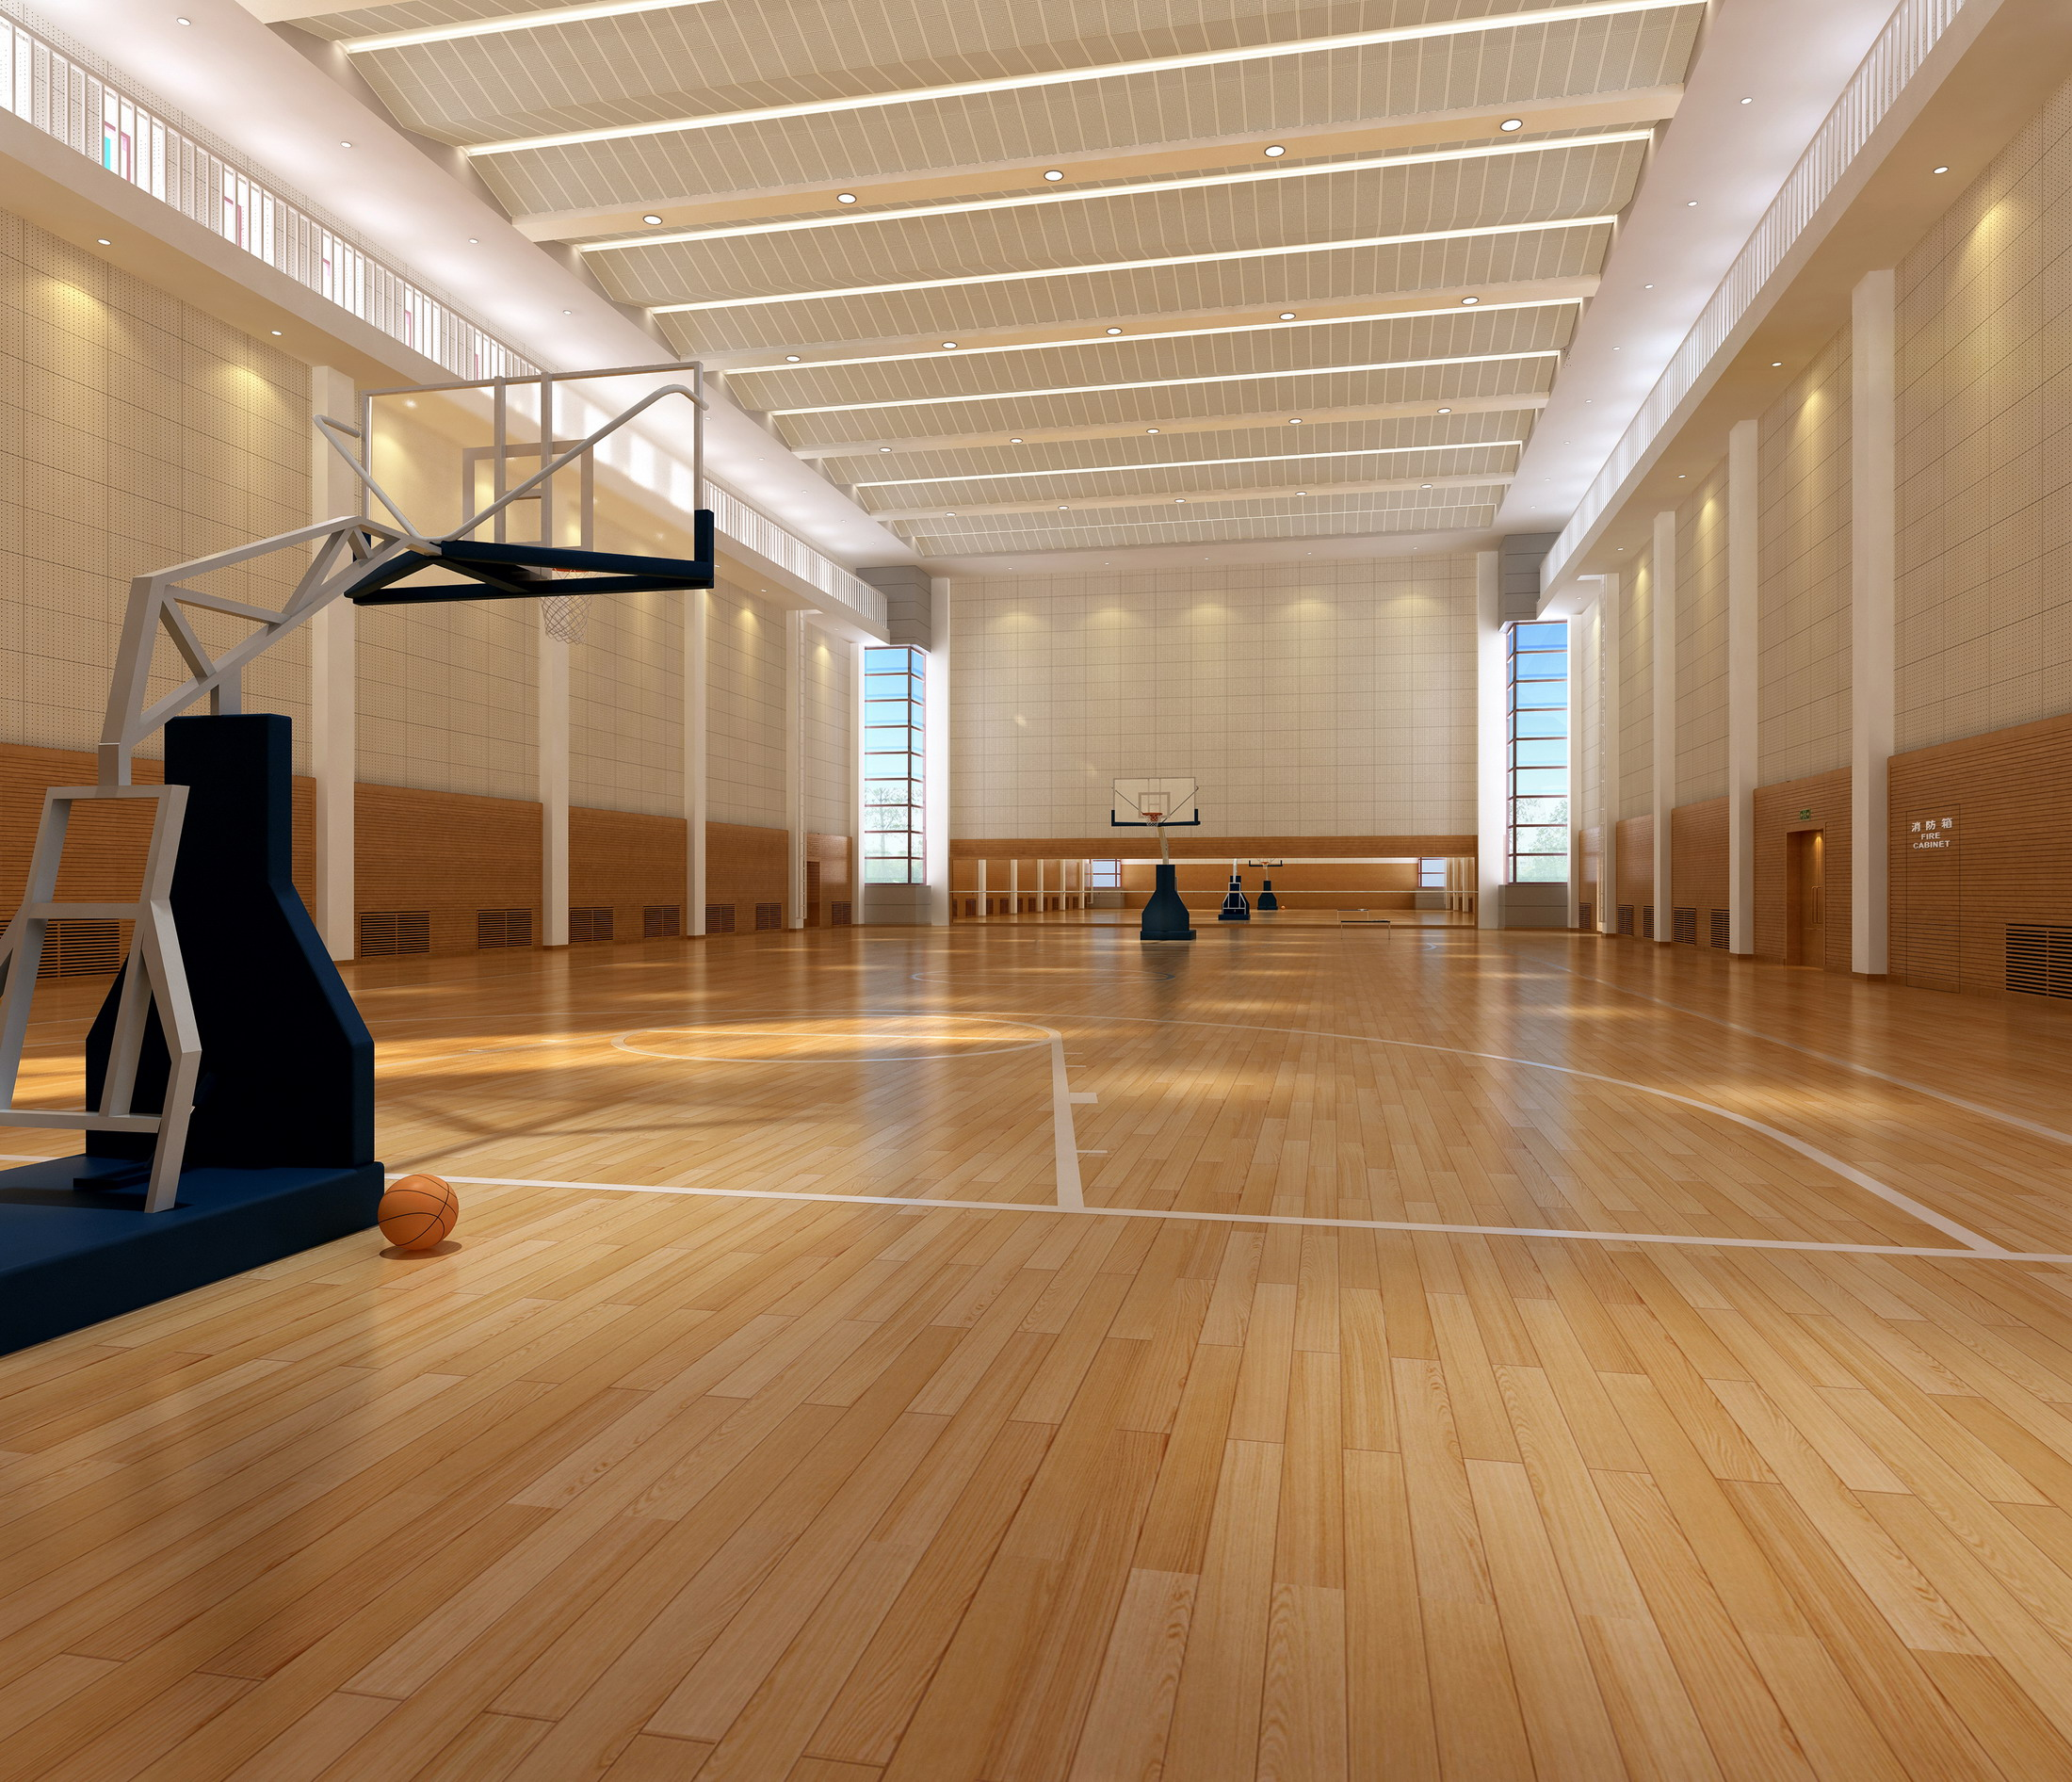 gymnasium arena basket 002 3d model maks 138832